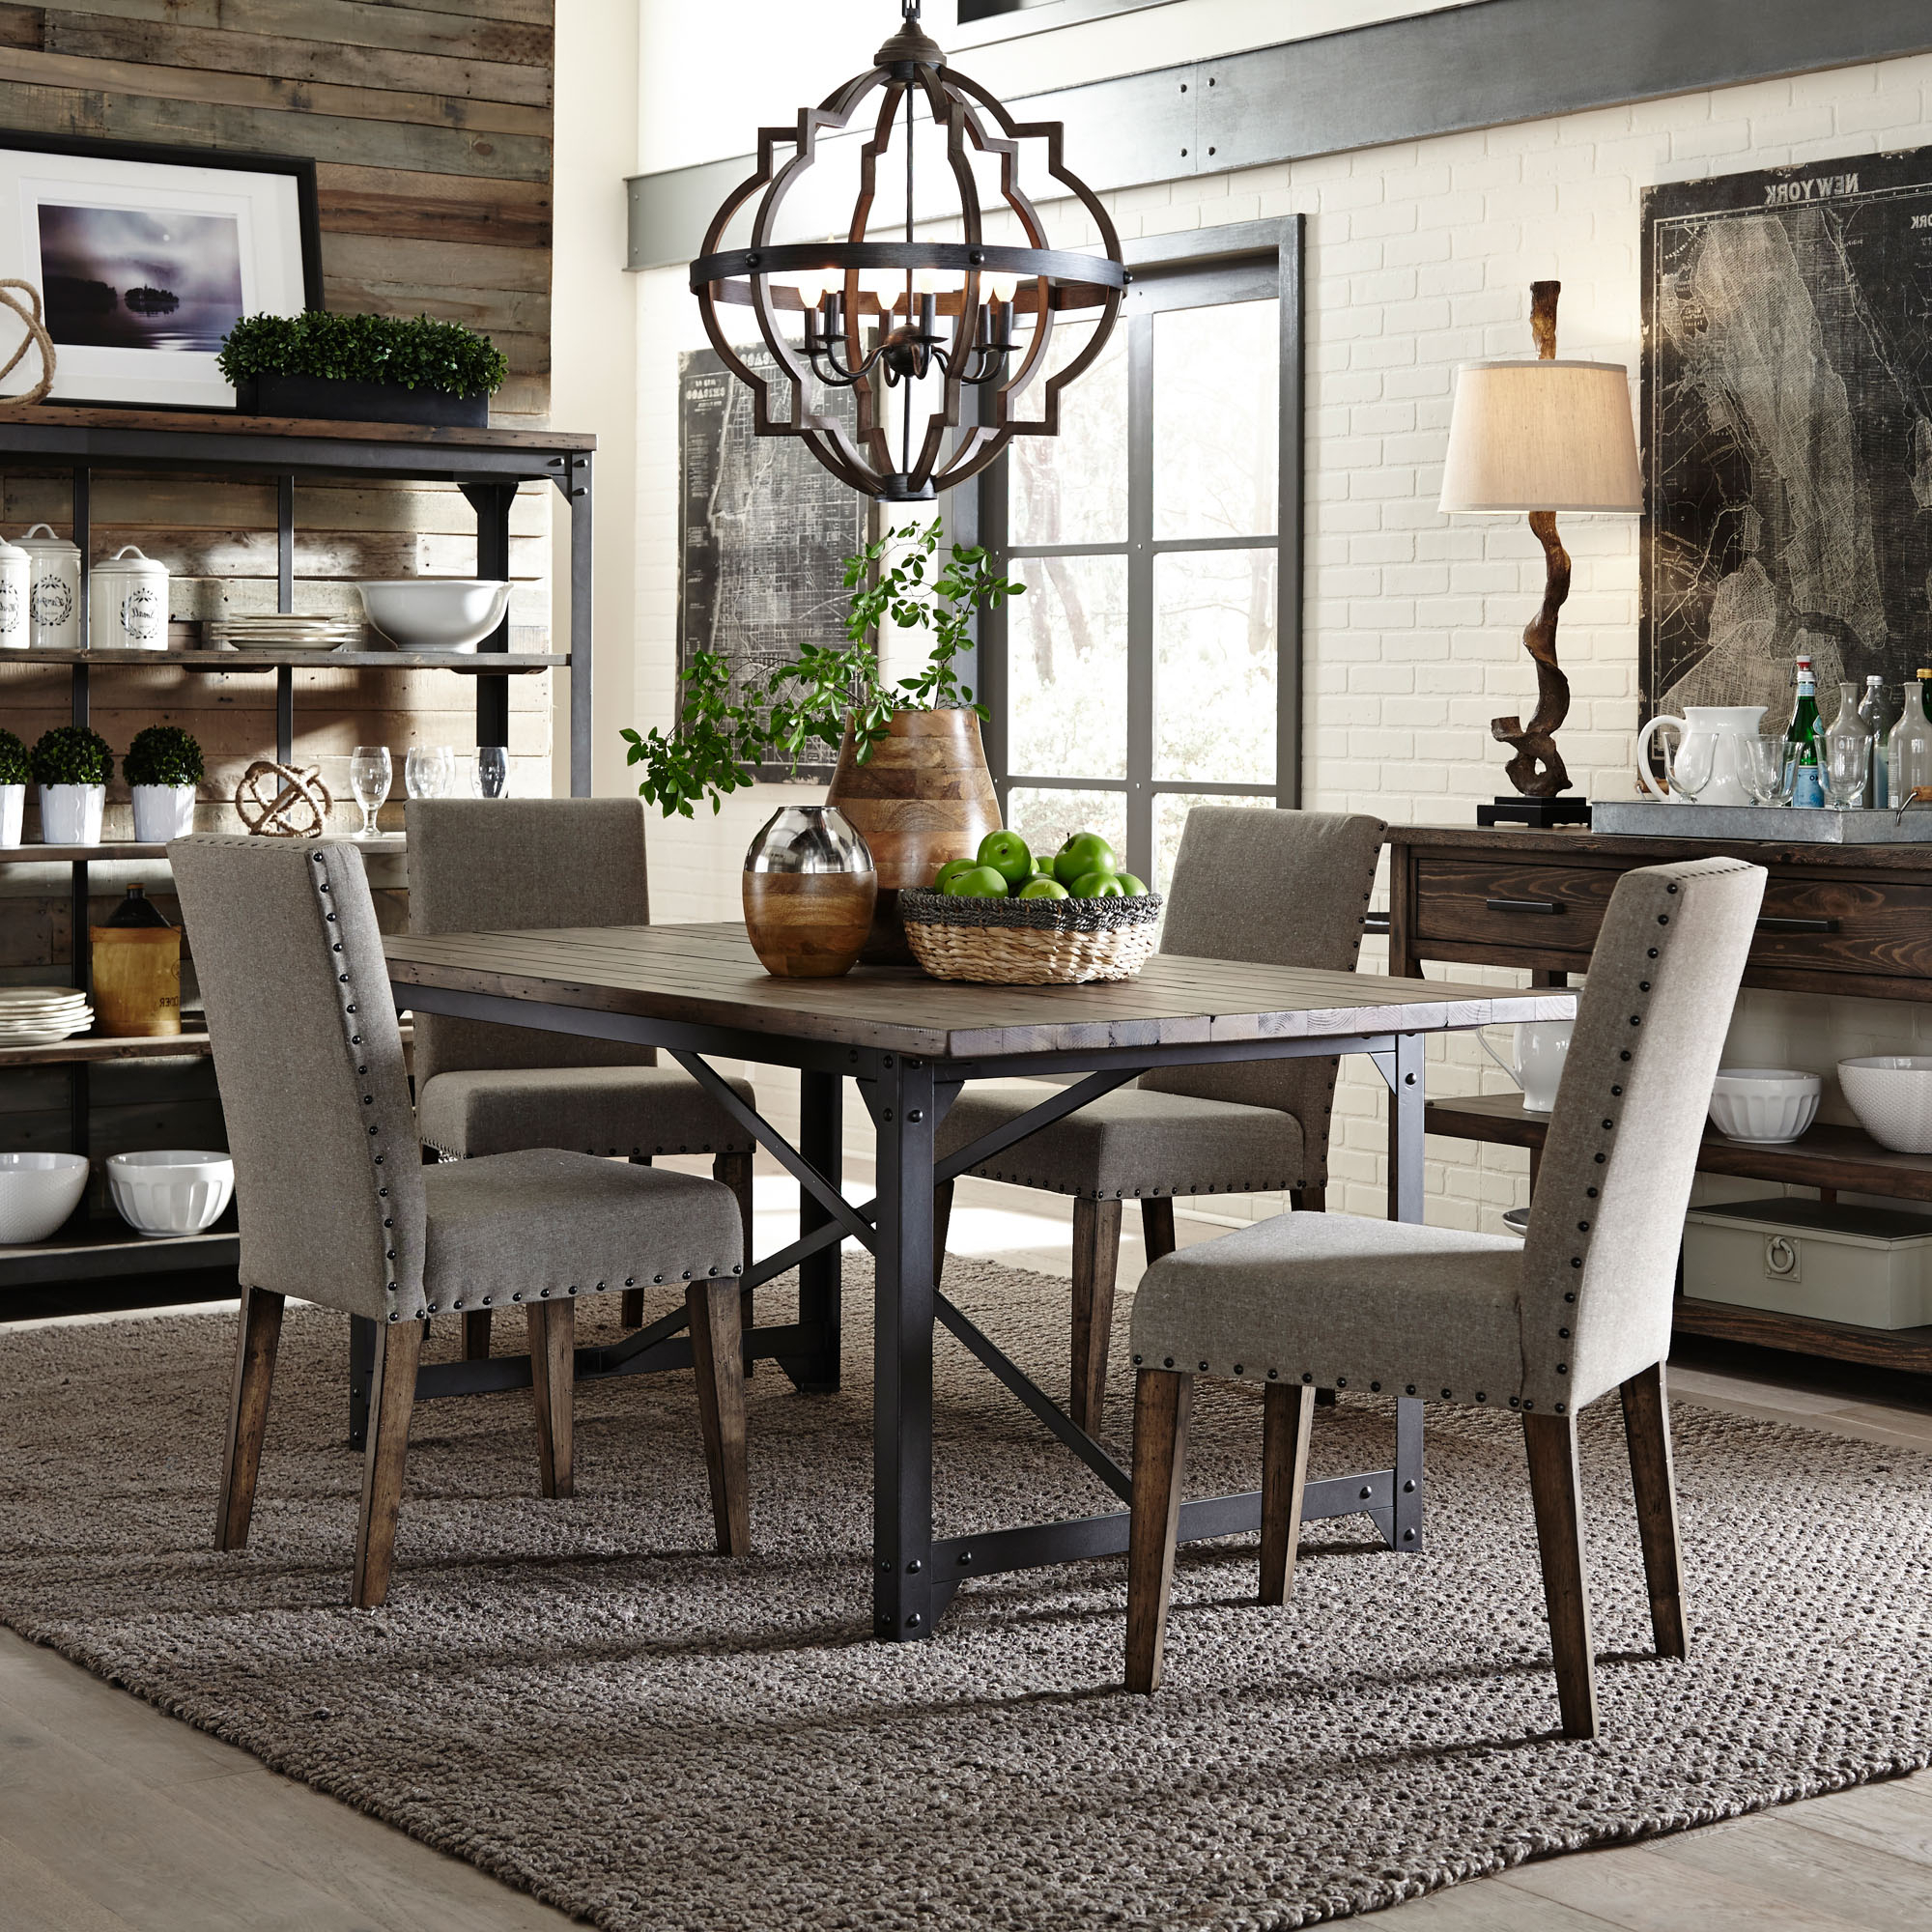 Best And Newest Dining Room Sets, Dining Room Furniture (View 7 of 25)